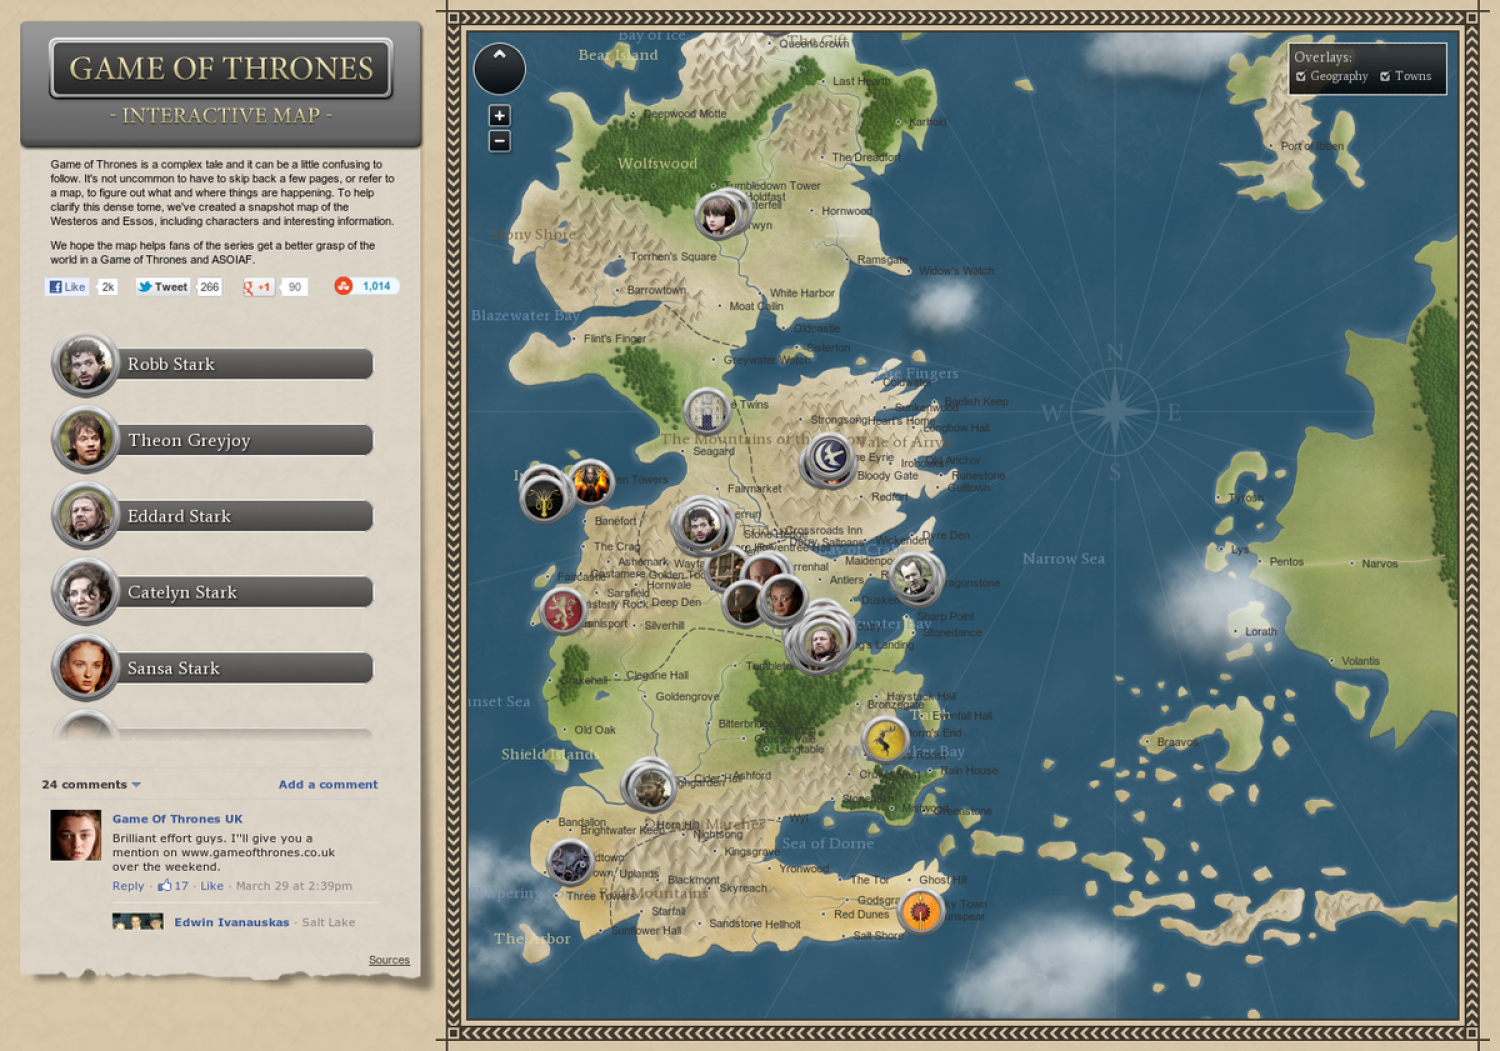 Game of thrones interactive map visual game of thrones interactive map infographic gumiabroncs Image collections